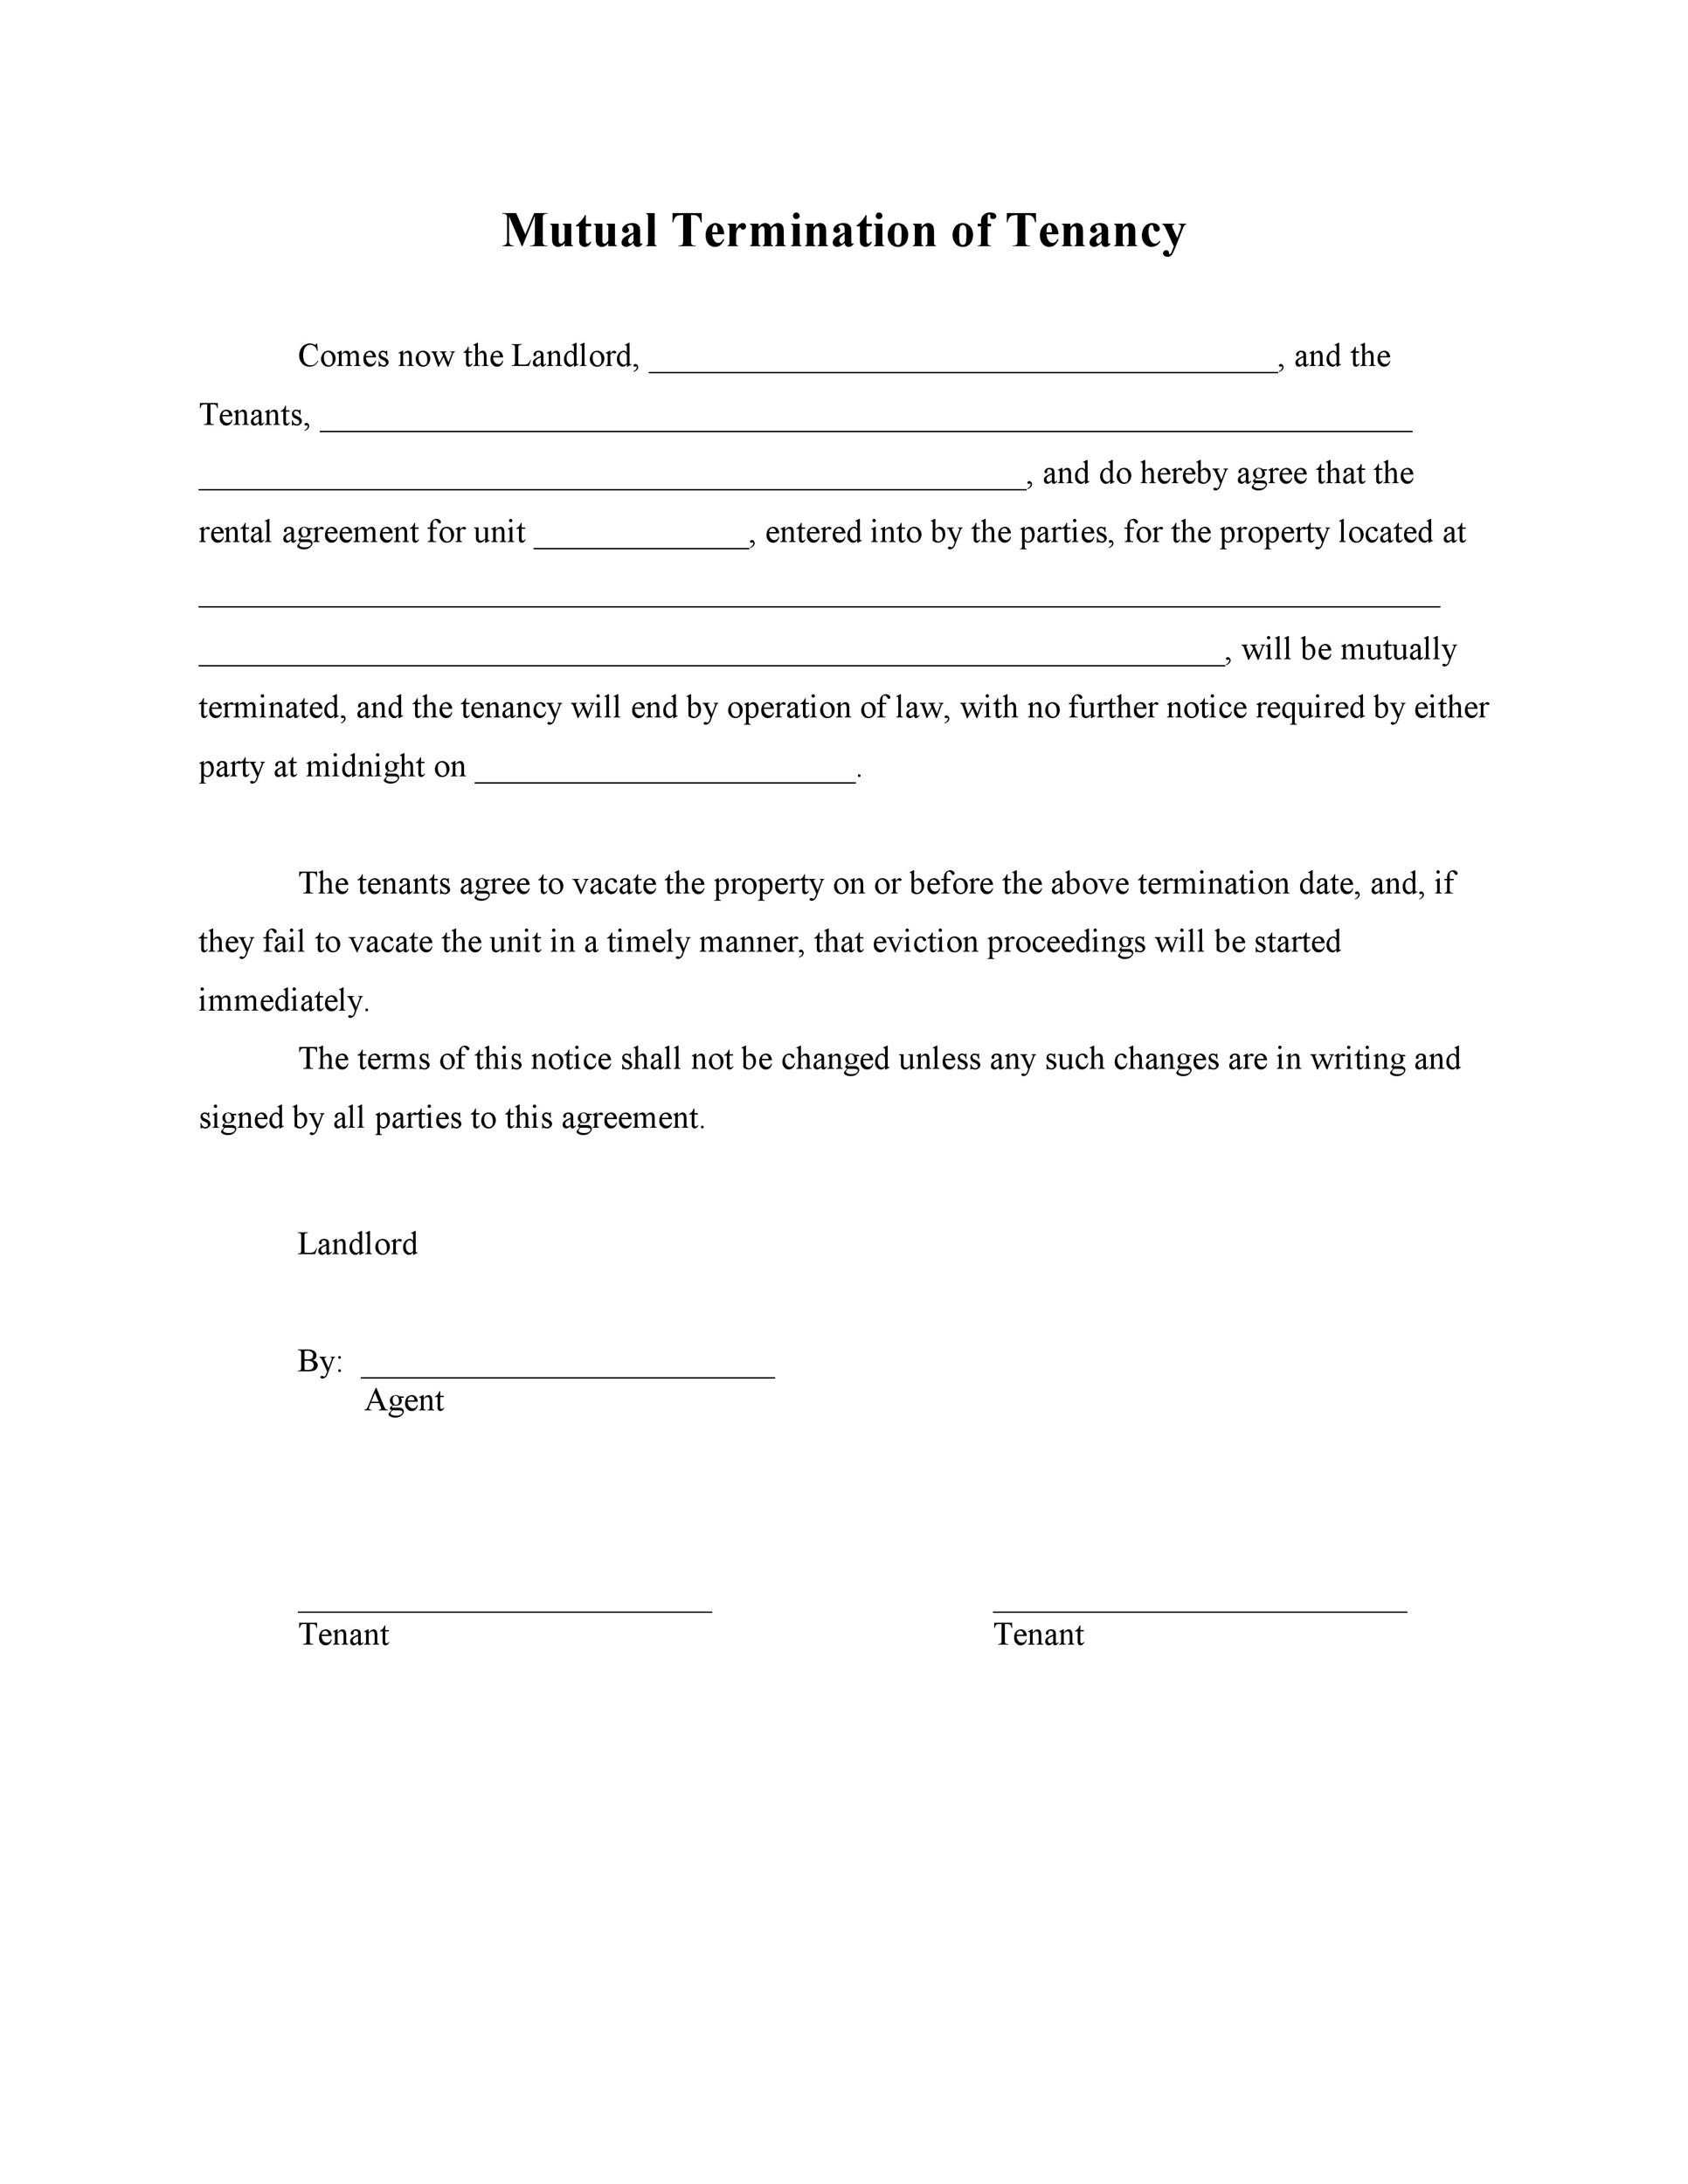 House Rental Agreement. Printable Sample Room Rental Agreement